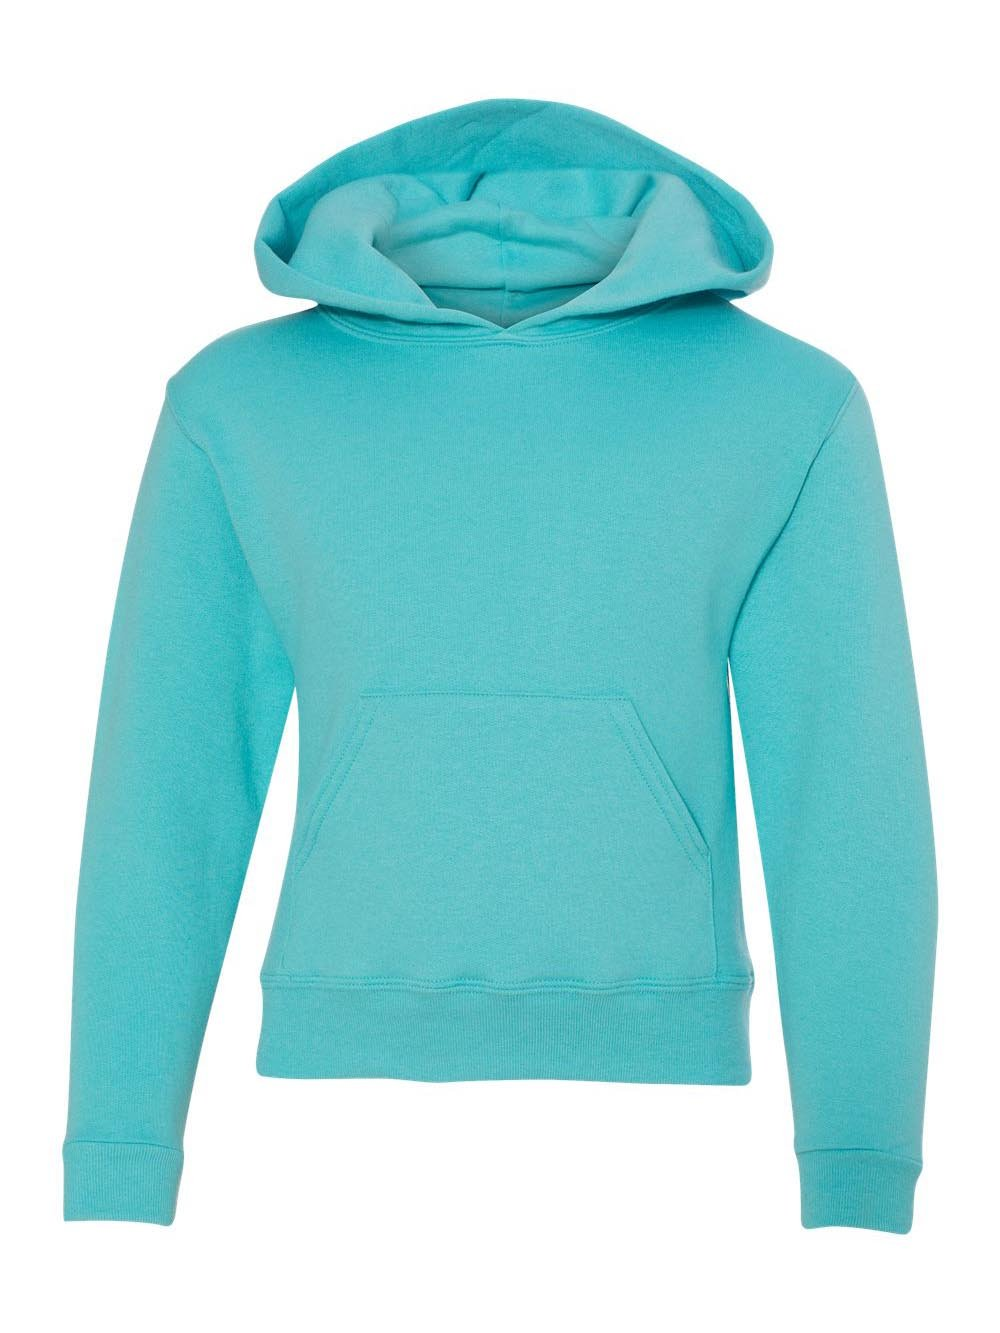 Jerzees 996Y Youth NuBlend Hooded Pullover Sweatshirt - Scuba Blue44; Large